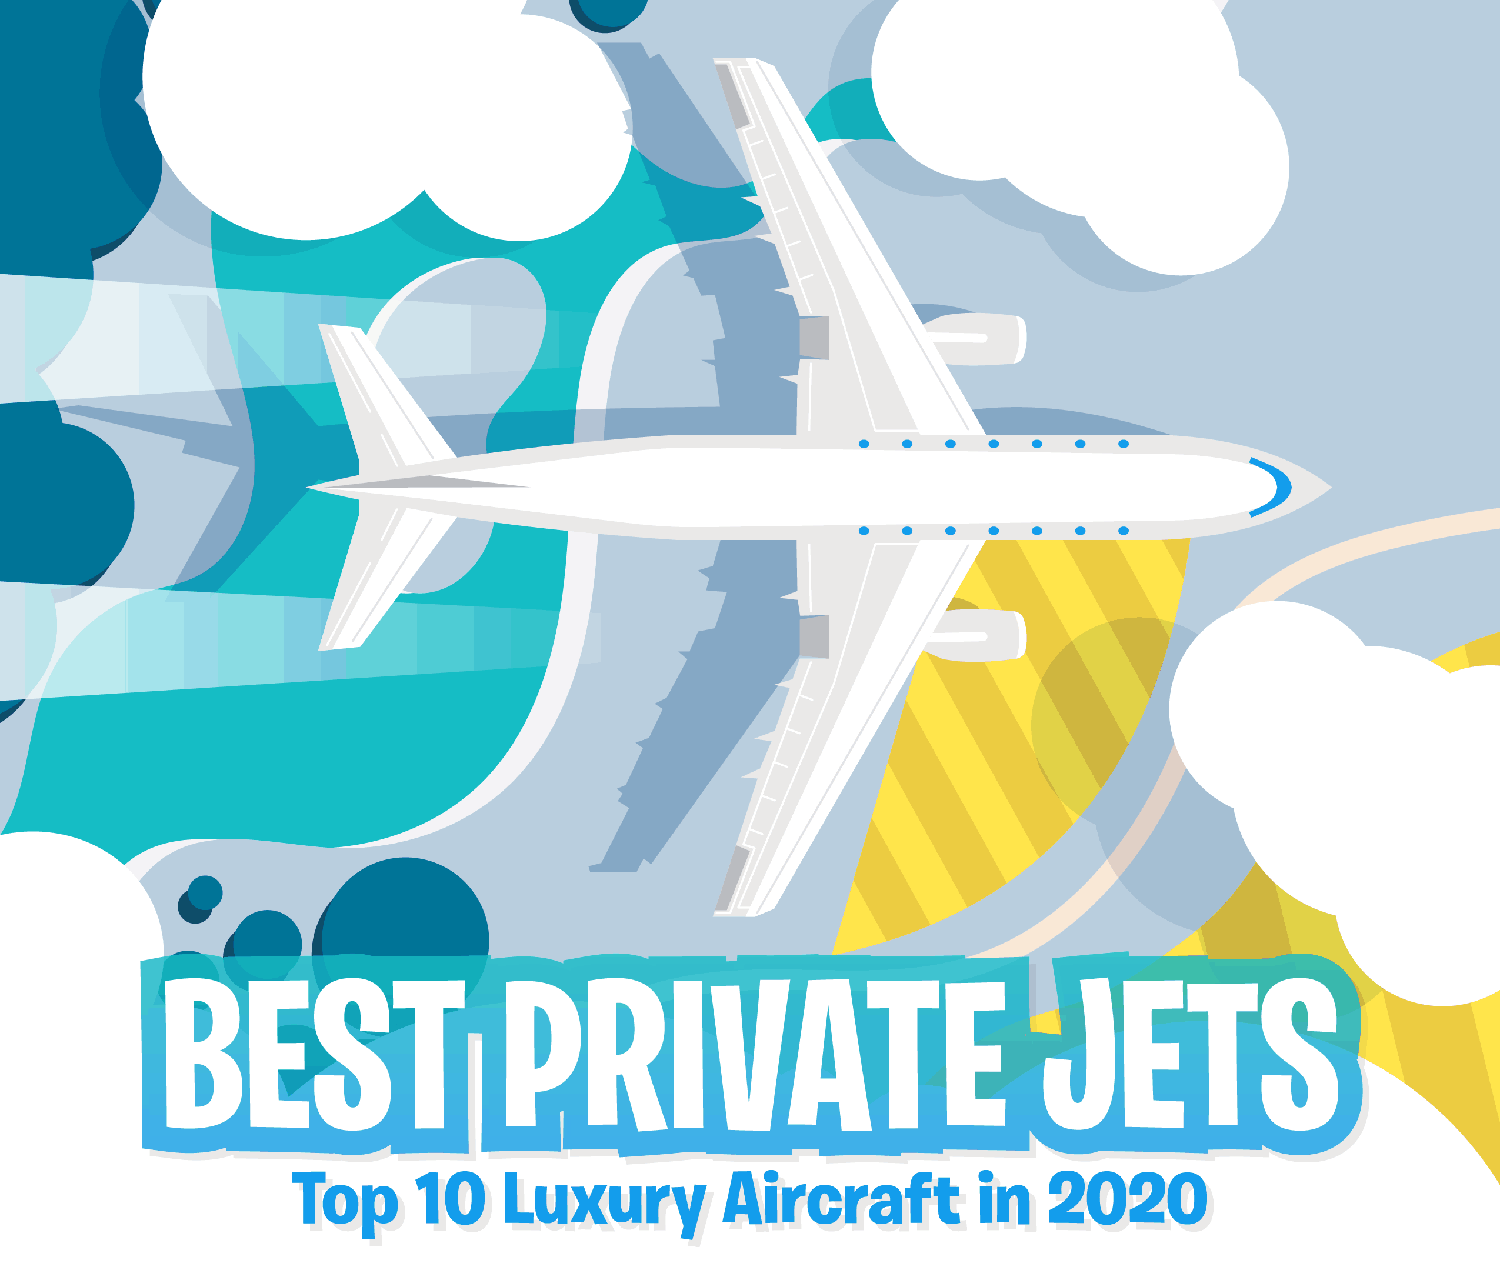 Best Private Jets: Top 10 Luxury Aircraft of 2020